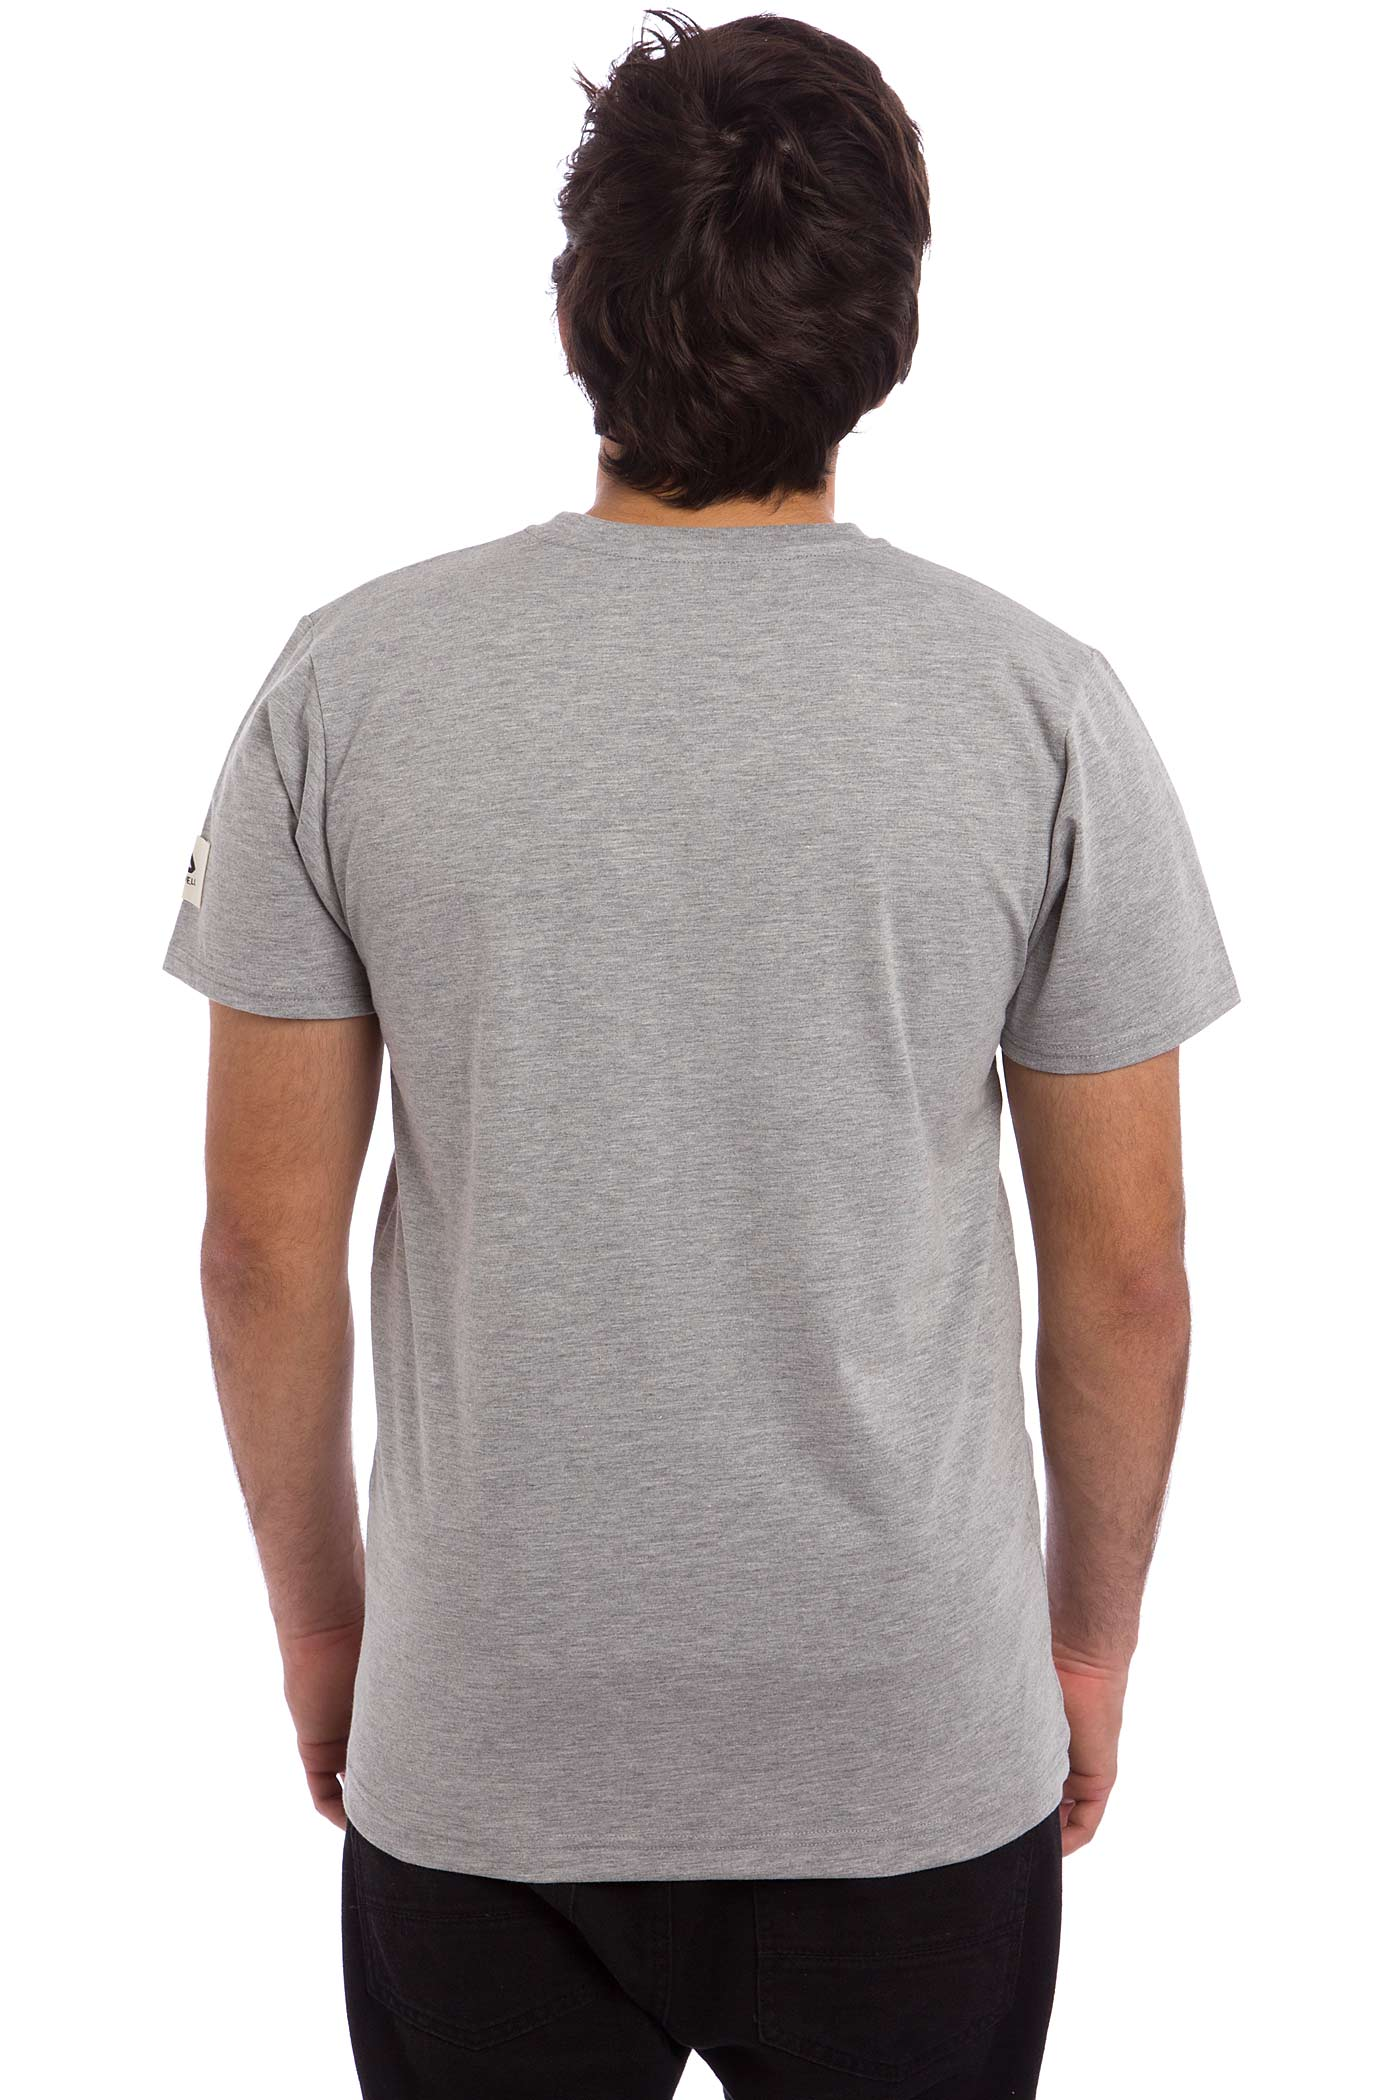 Anuell Plain T Shirt Heather Grey Buy At Skatedeluxe